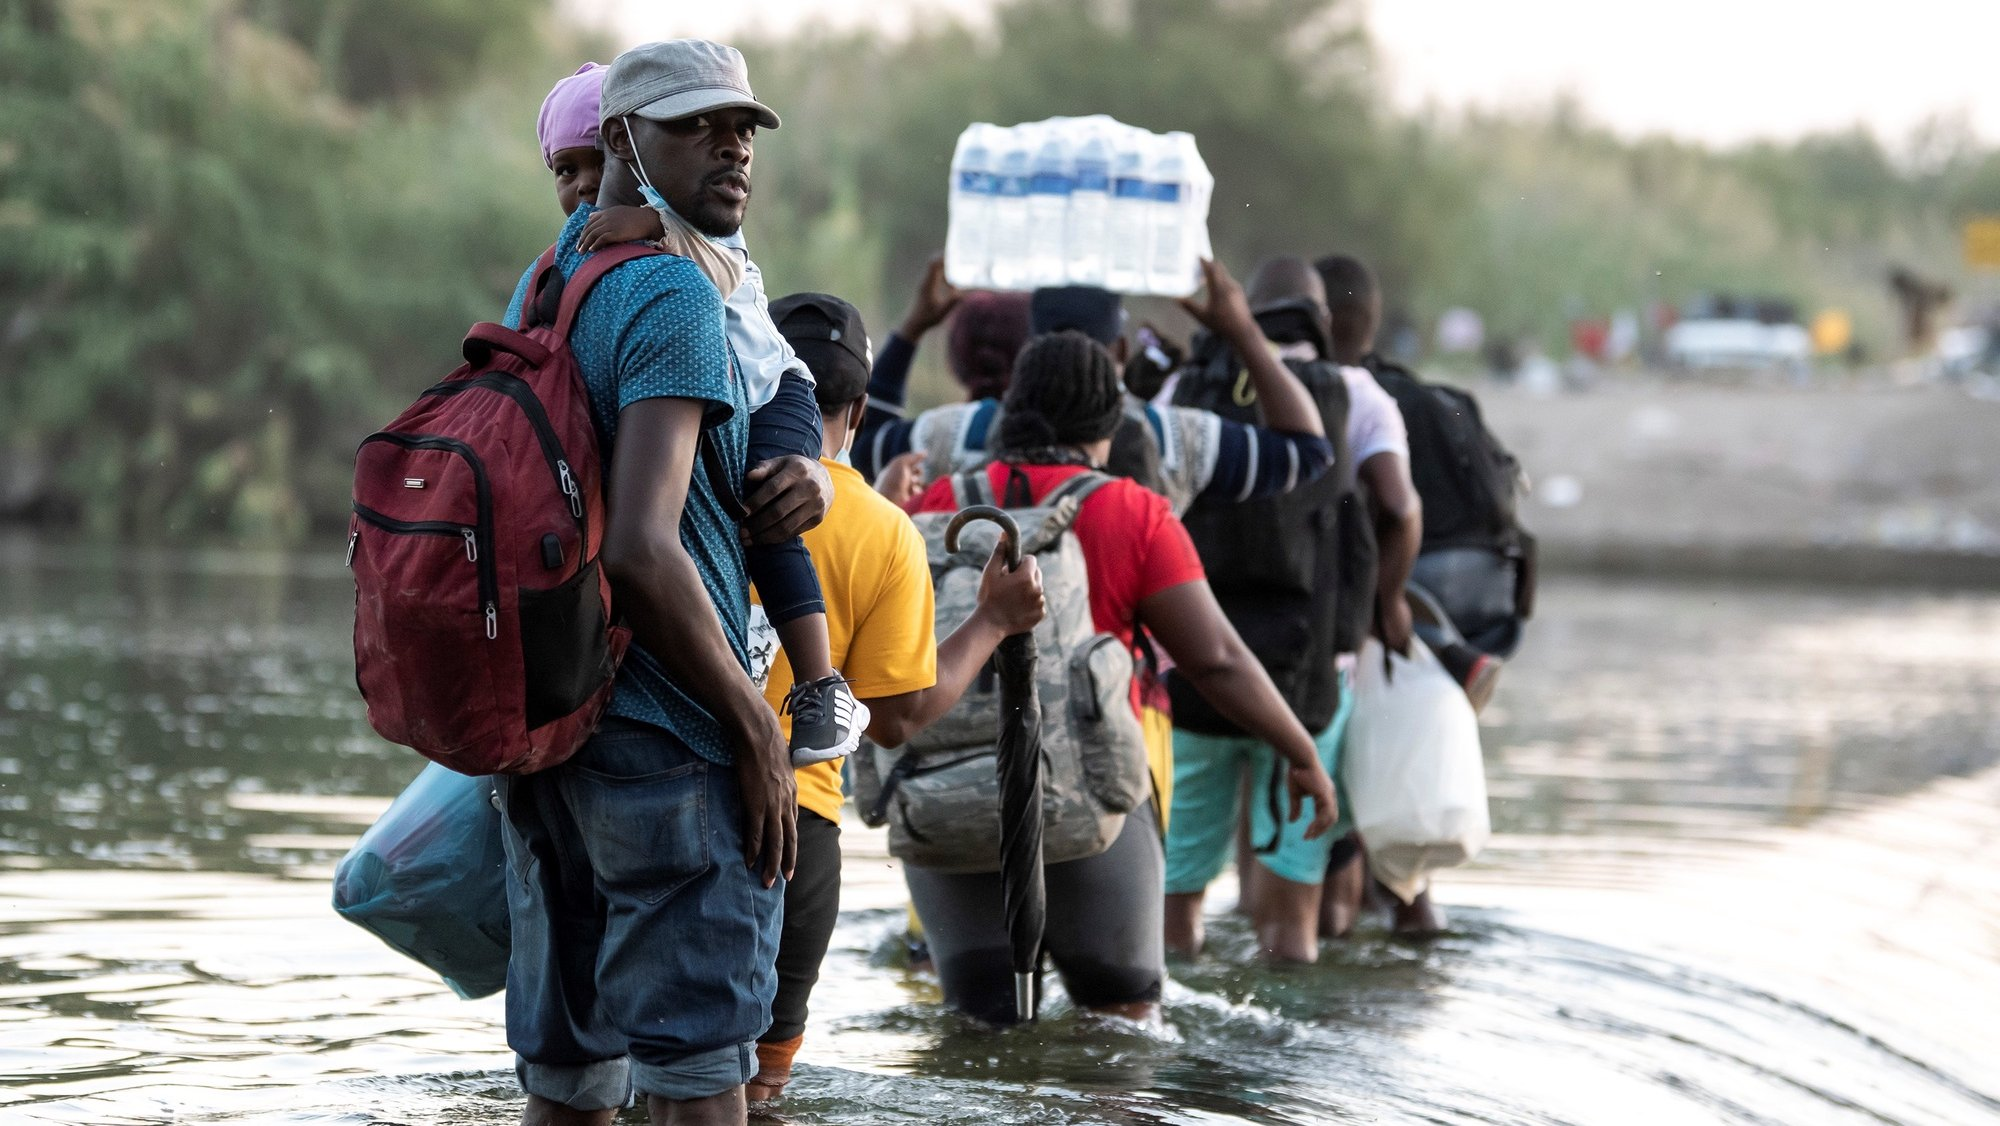 epa09475512 A group of Haitian migrants begin to cross the Rio Grande, on the border of Ciudad Acuna, Mexico, 18 September 2021. More than 10,000 migrants have arrived in the border cities of Del Rio Texas in the United States and Ciudad Acuna in Mexico in recent days and are waiting under the International Bridge for the asylum application to be processed by the United States authorities.  EPA/Miguel Sierra